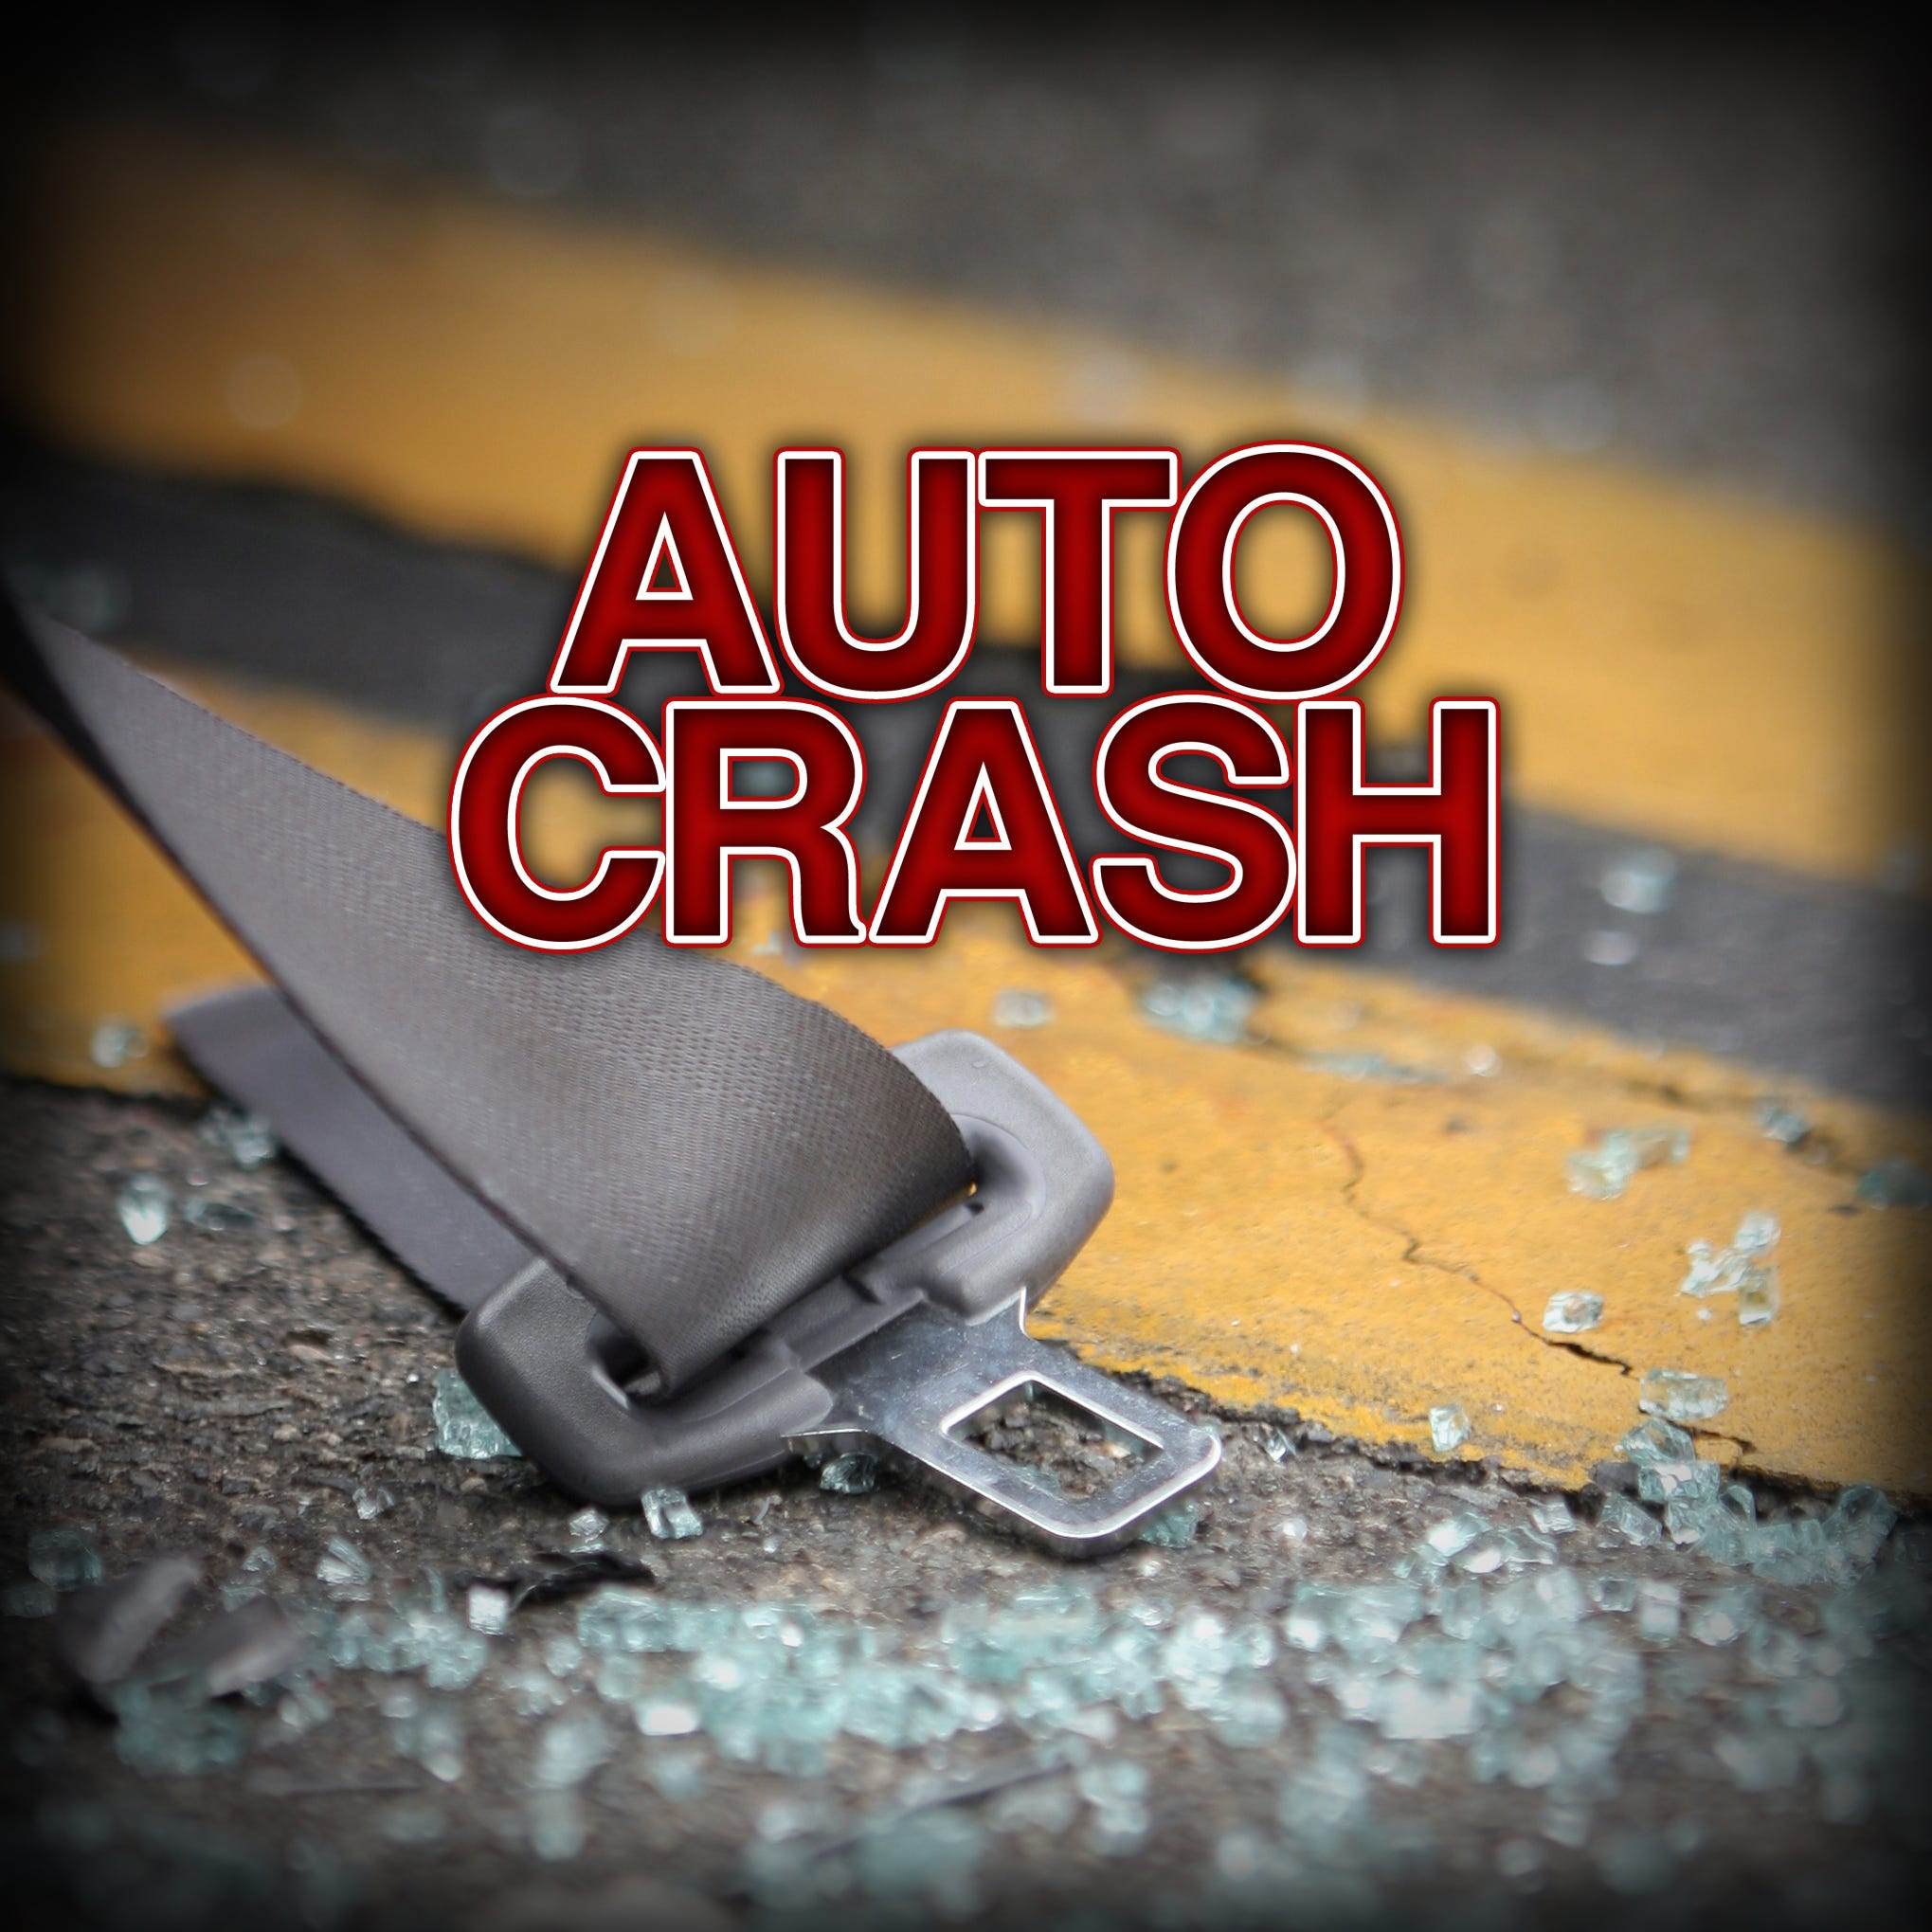 Columbus woman killed in Etna township crash